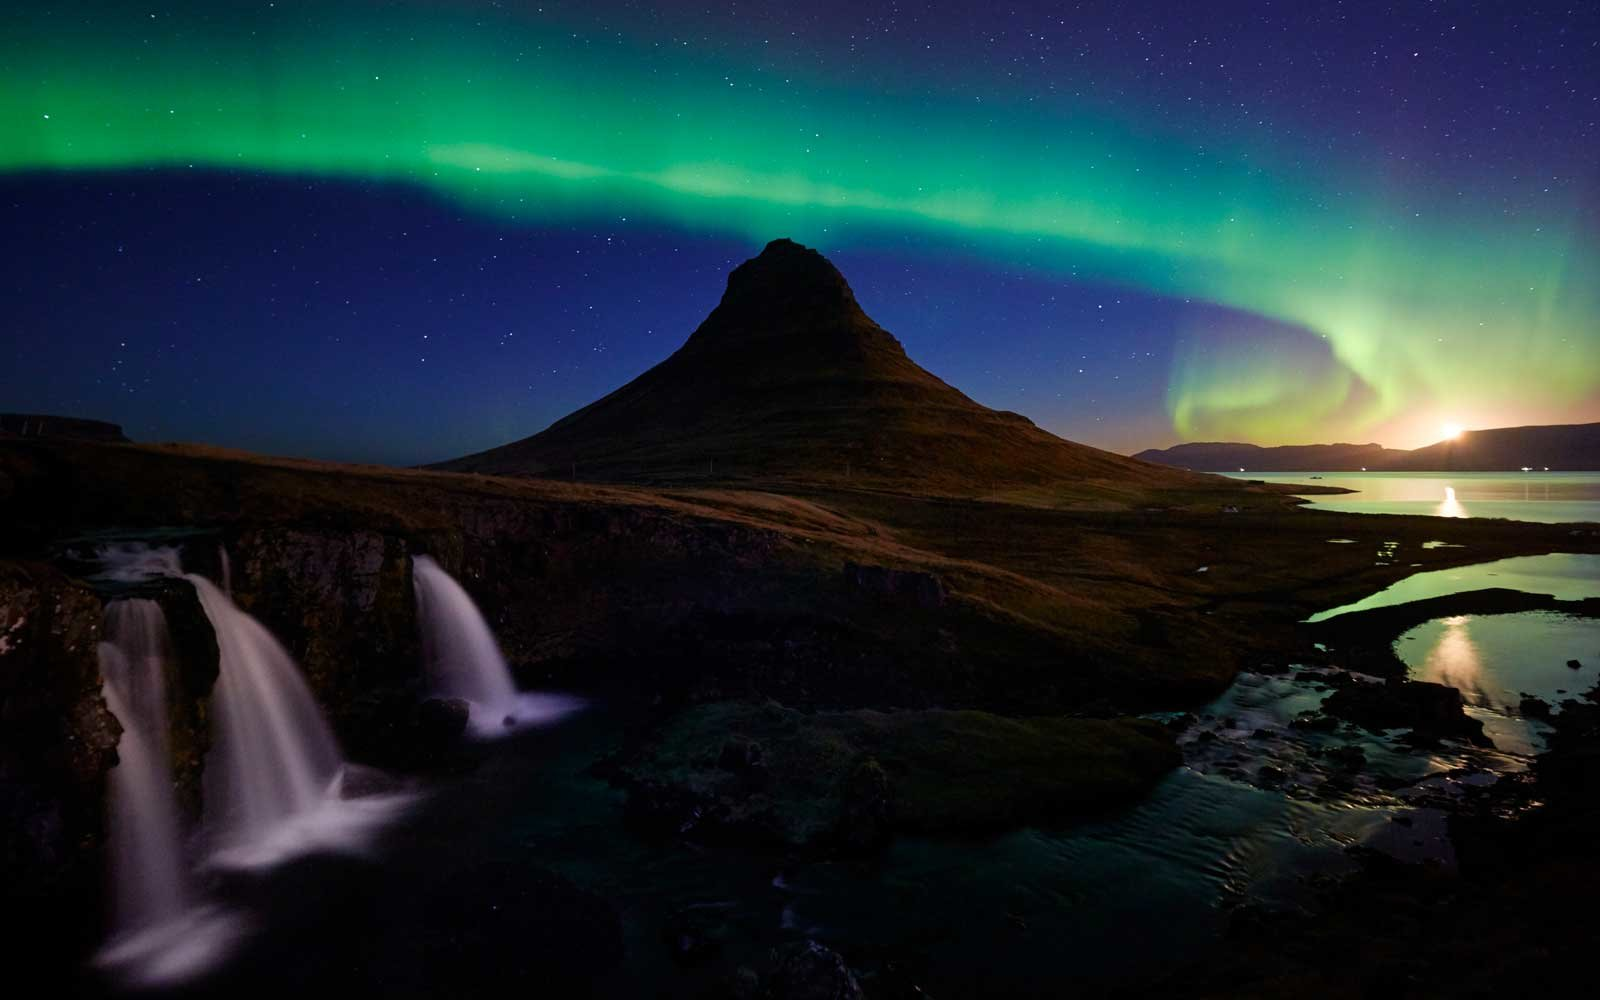 Cheap Flights To Iceland To See The Northern Lights